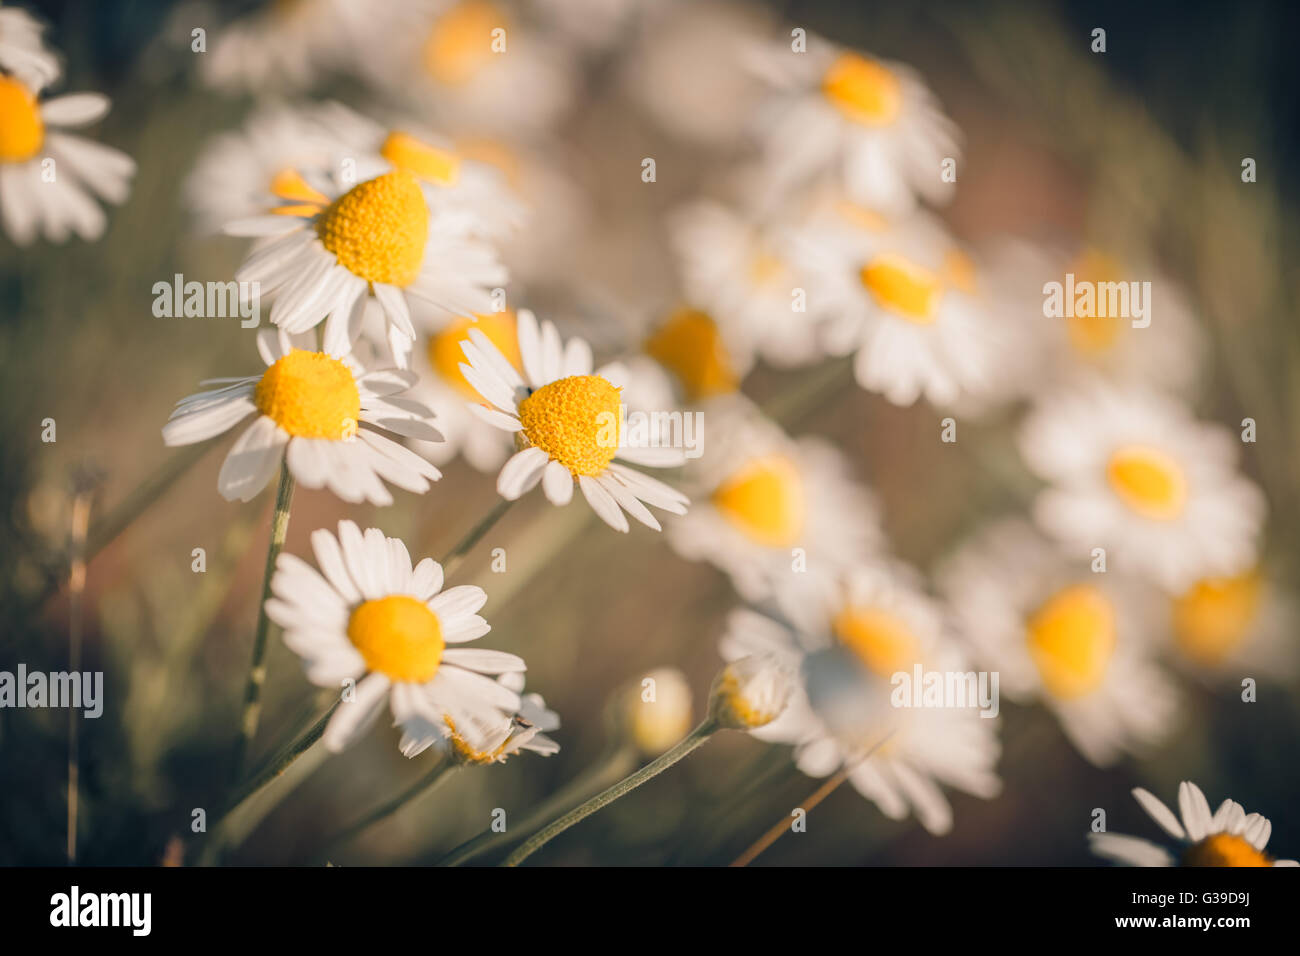 Beautiful field of daisy flowers, summer background concept - Stock Image